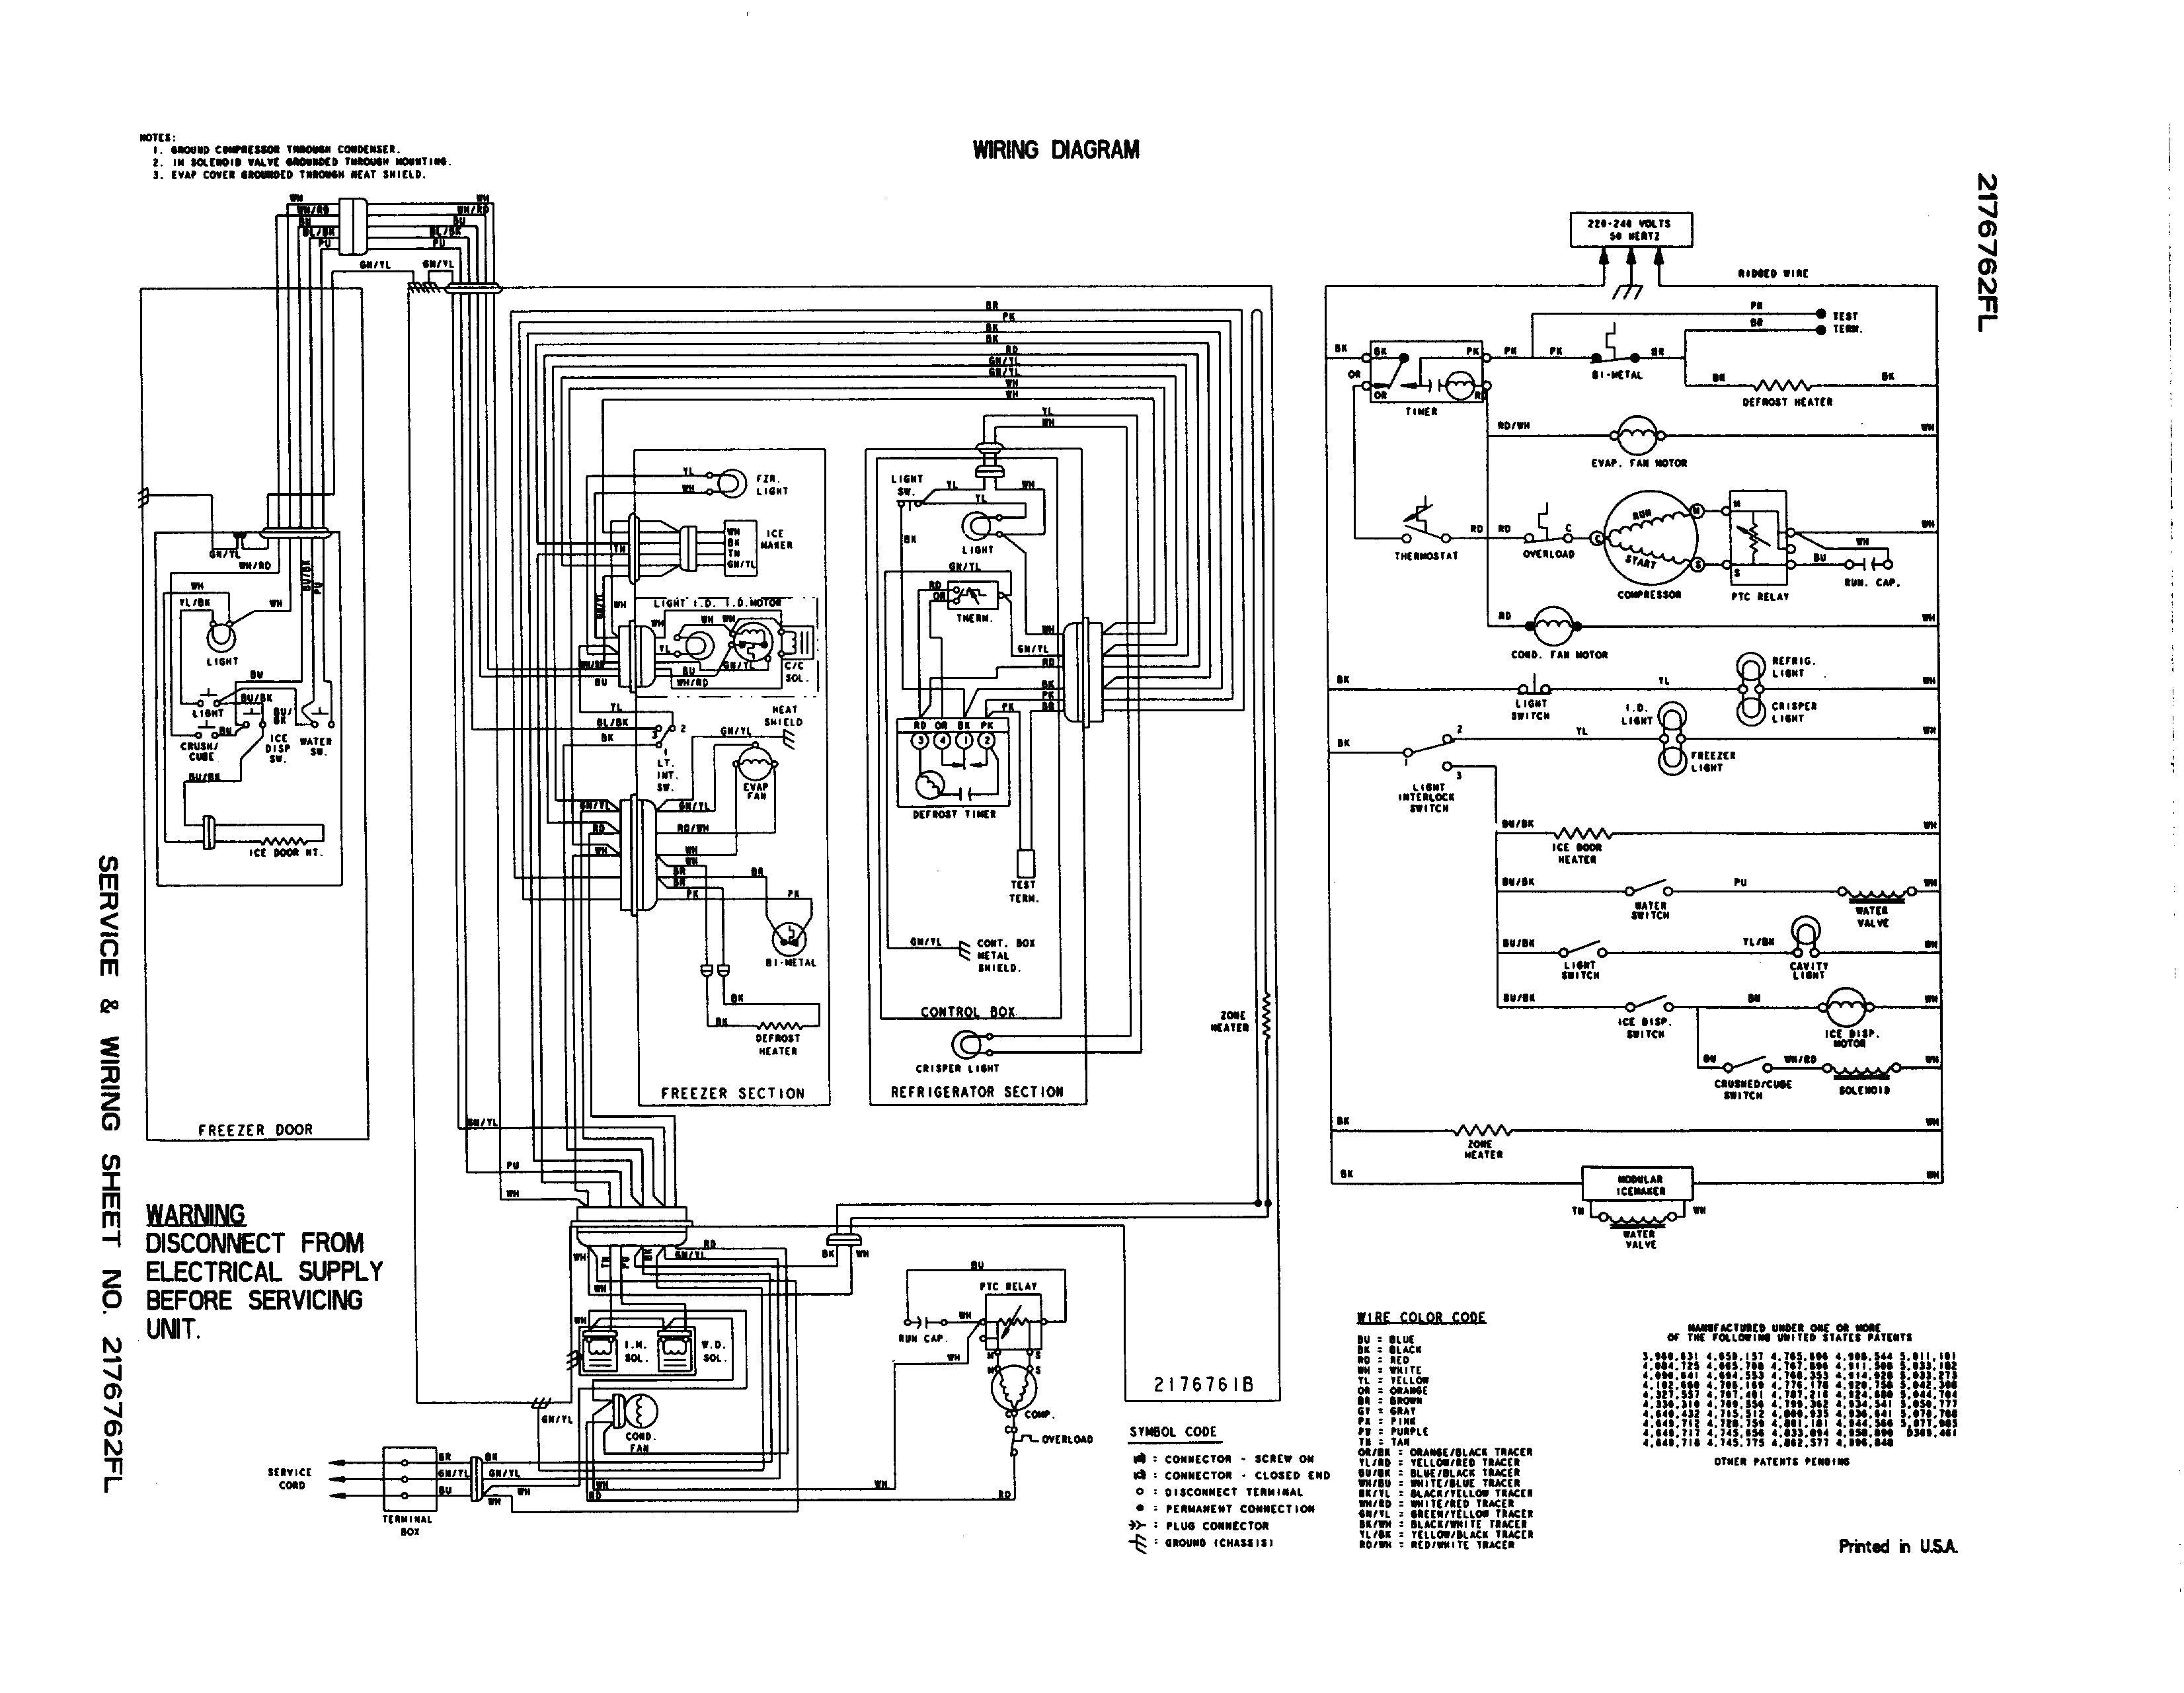 Wiring Diagram For Whirlpool | Wiring Schematic Diagram on